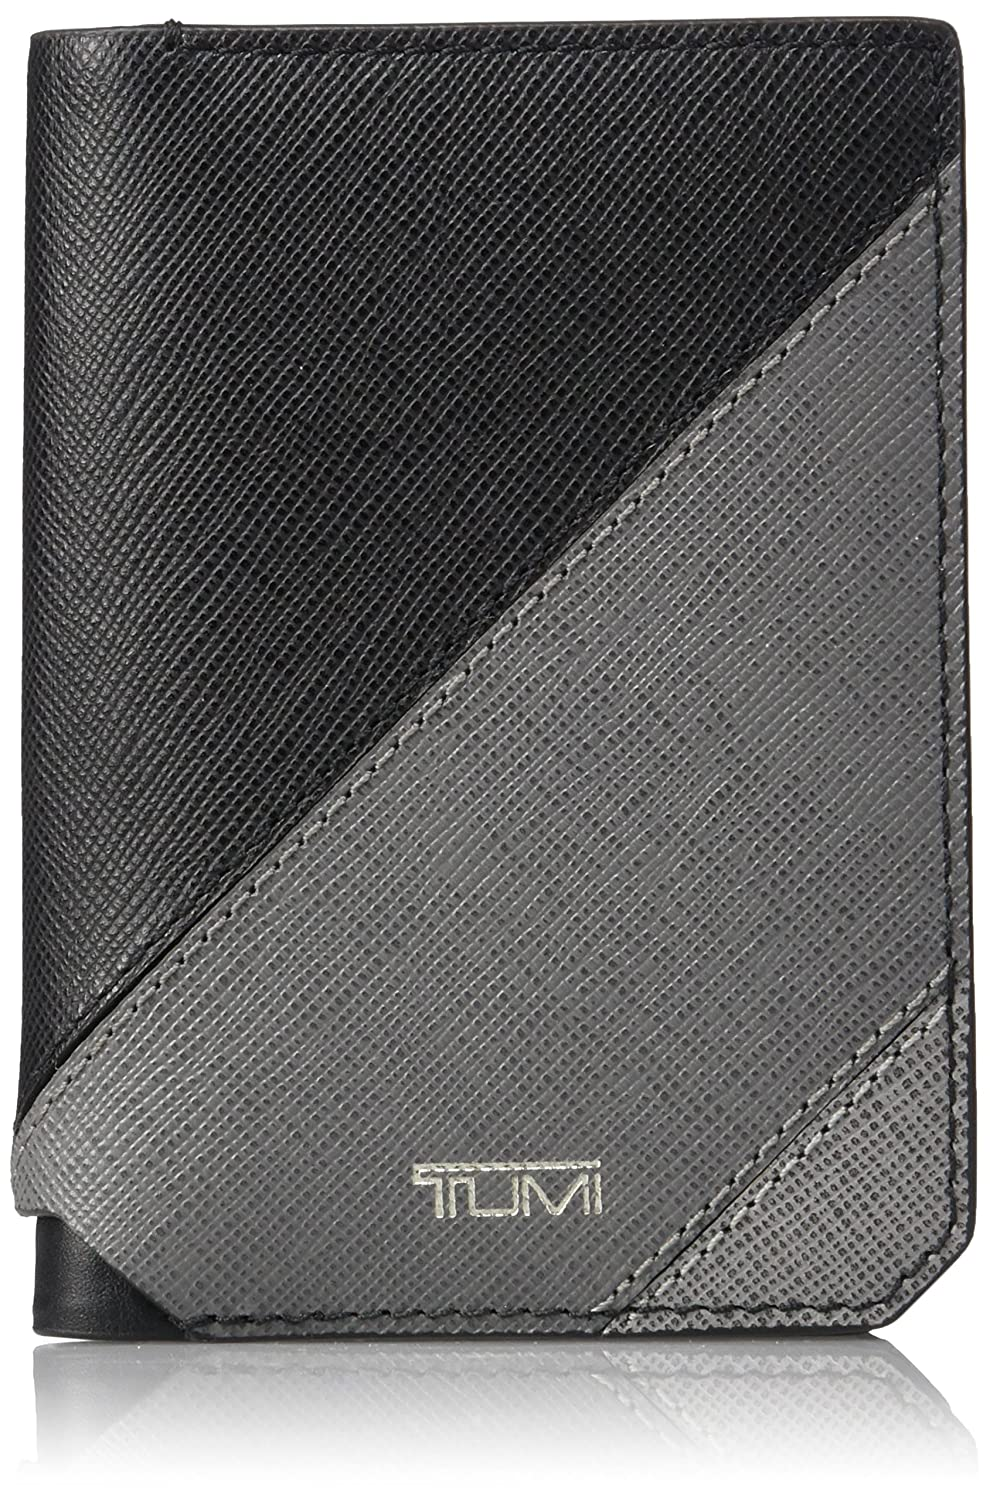 Amazon.com: Tumi Men\'s Mason Gusseted Card Holder Wallet With RFID ...